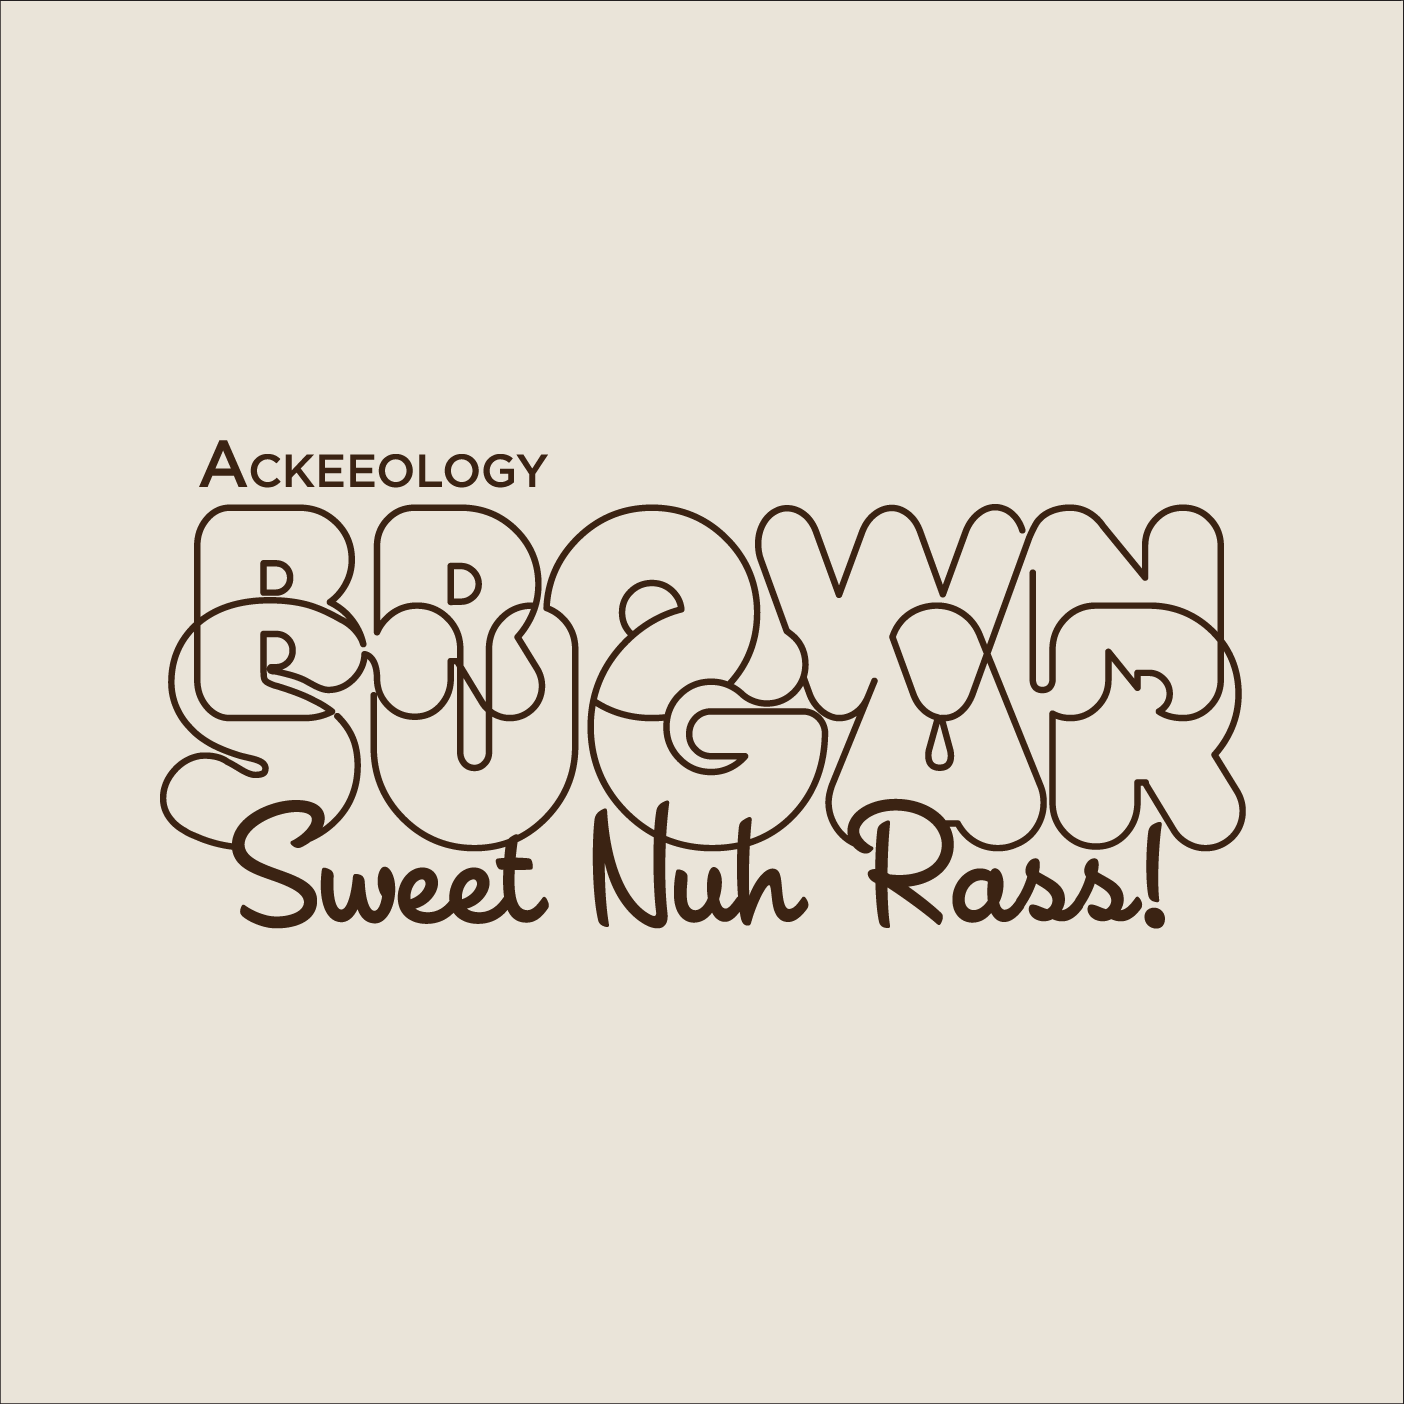 Brown Sugar: Ackeeology